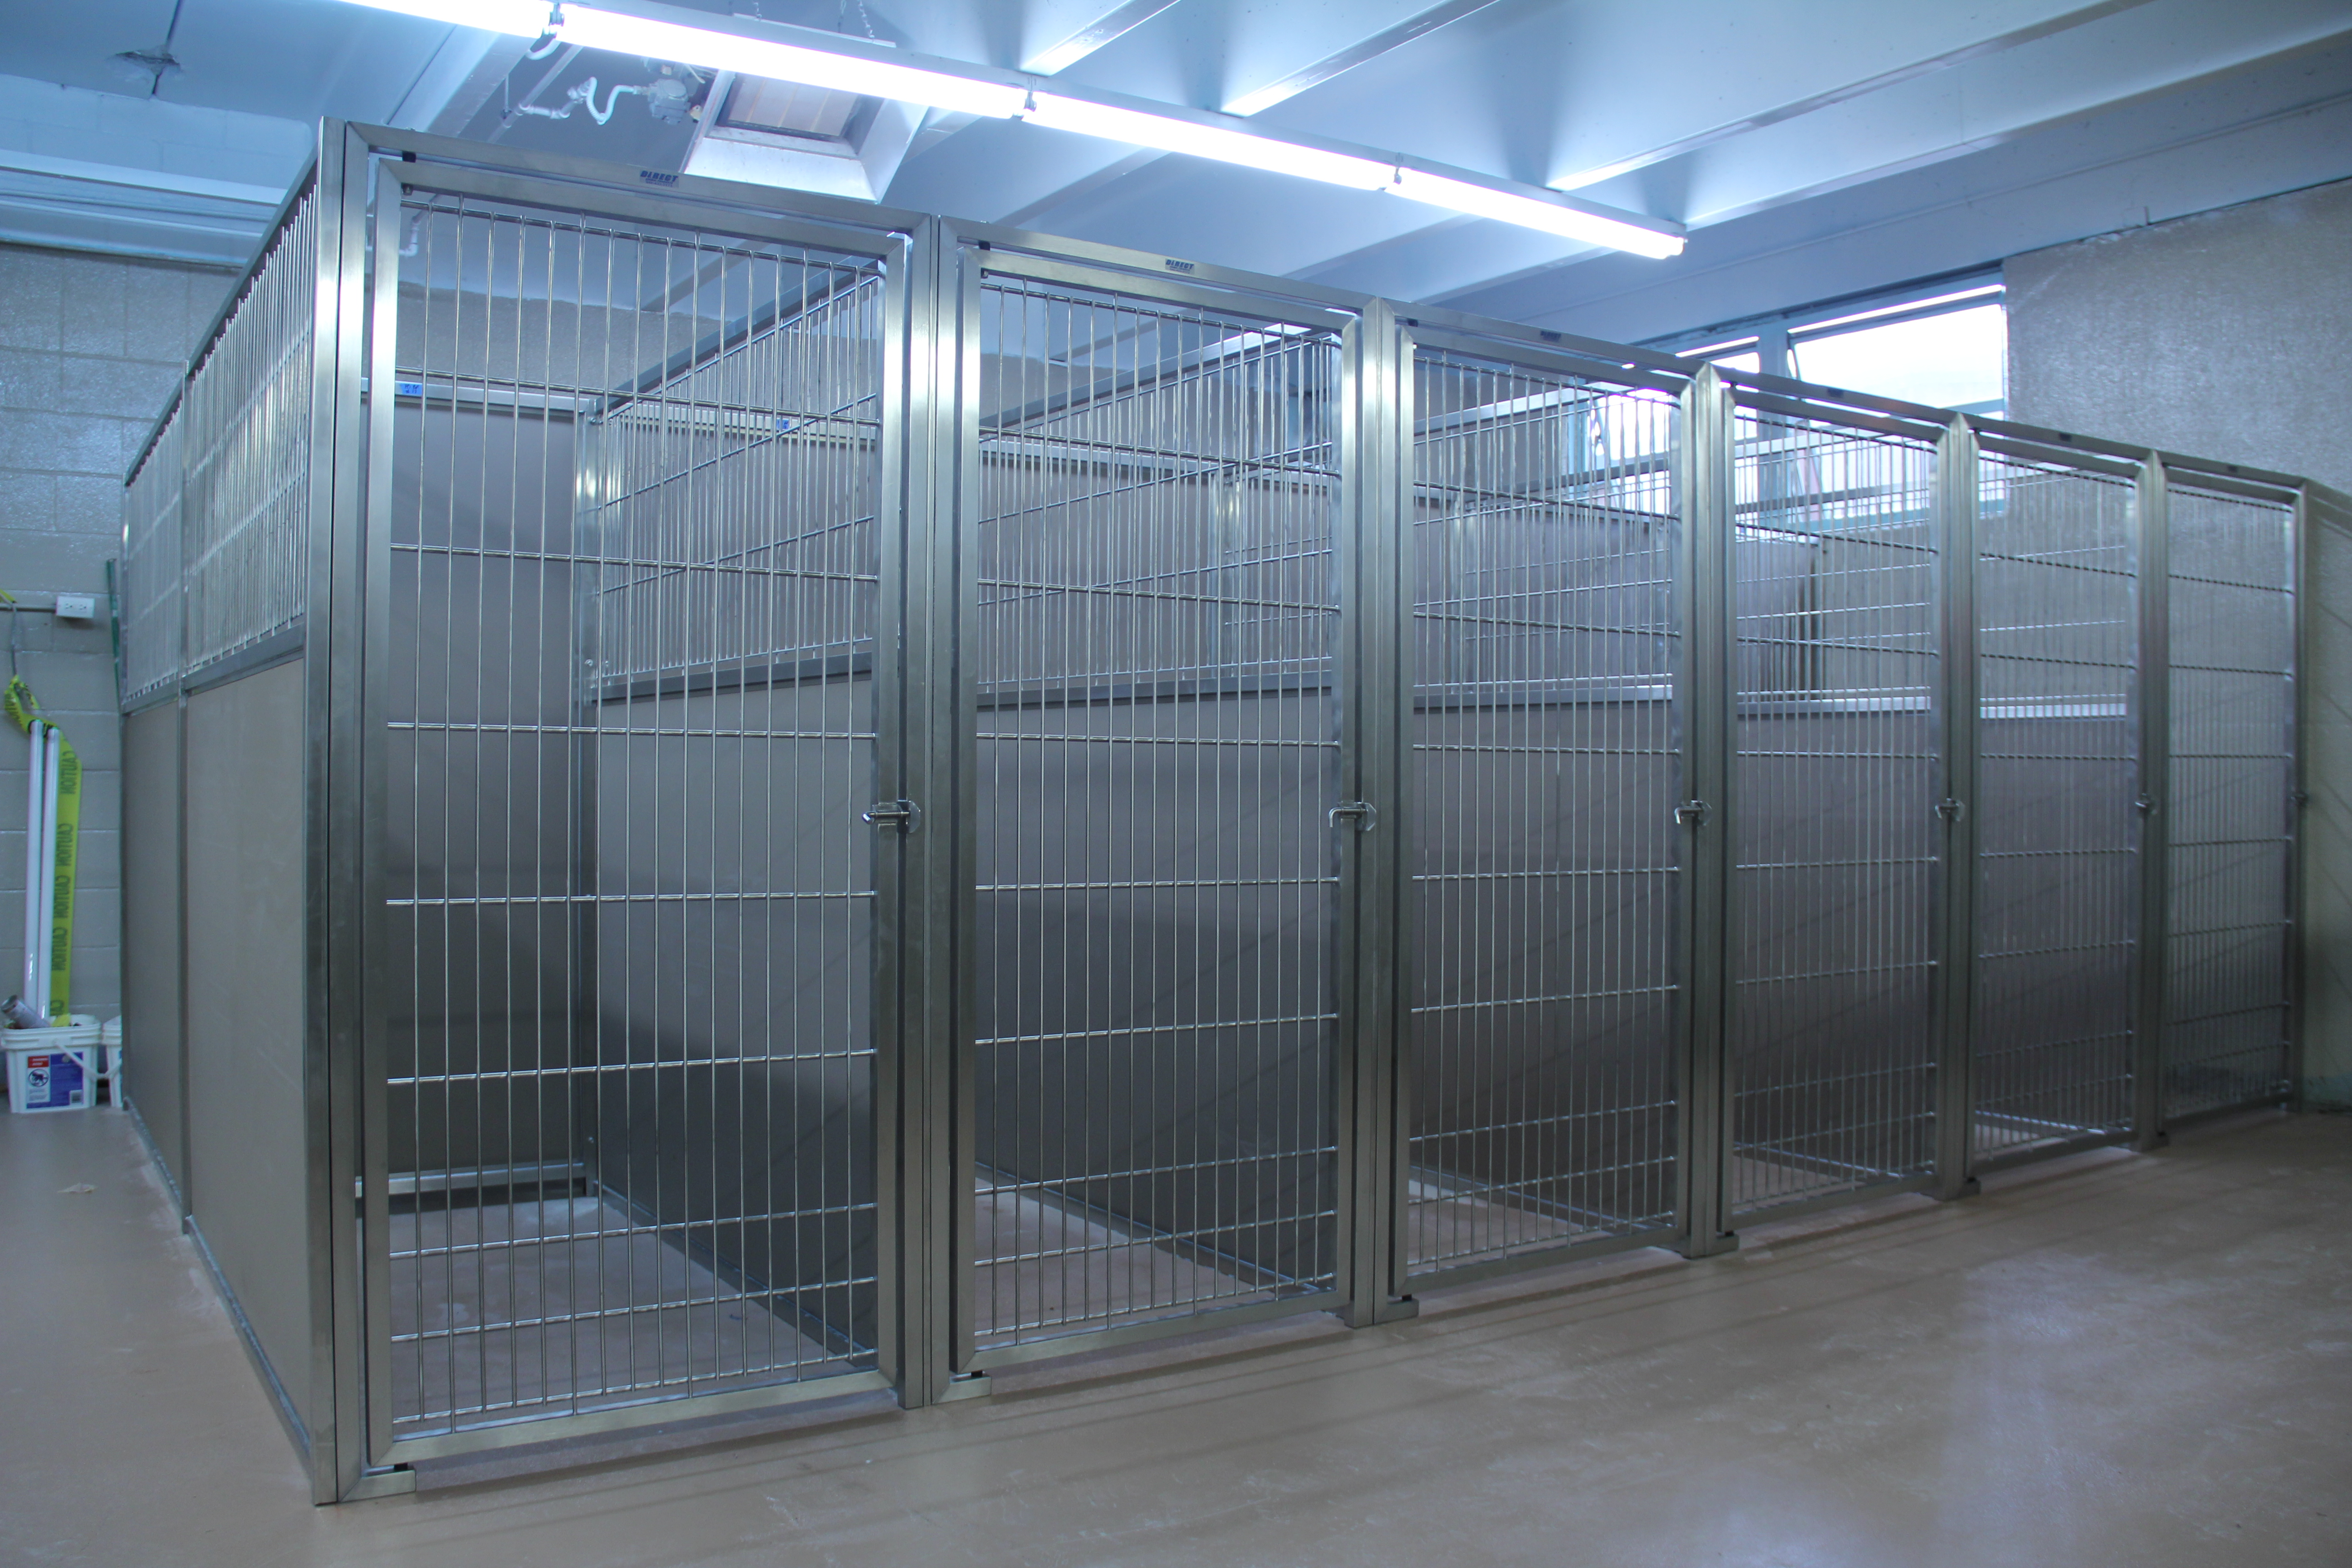 3456 #2C669F The Best Dog Kennel Panels Start With Durable Stainless Steel Doors image Used Metal Doors 41035184